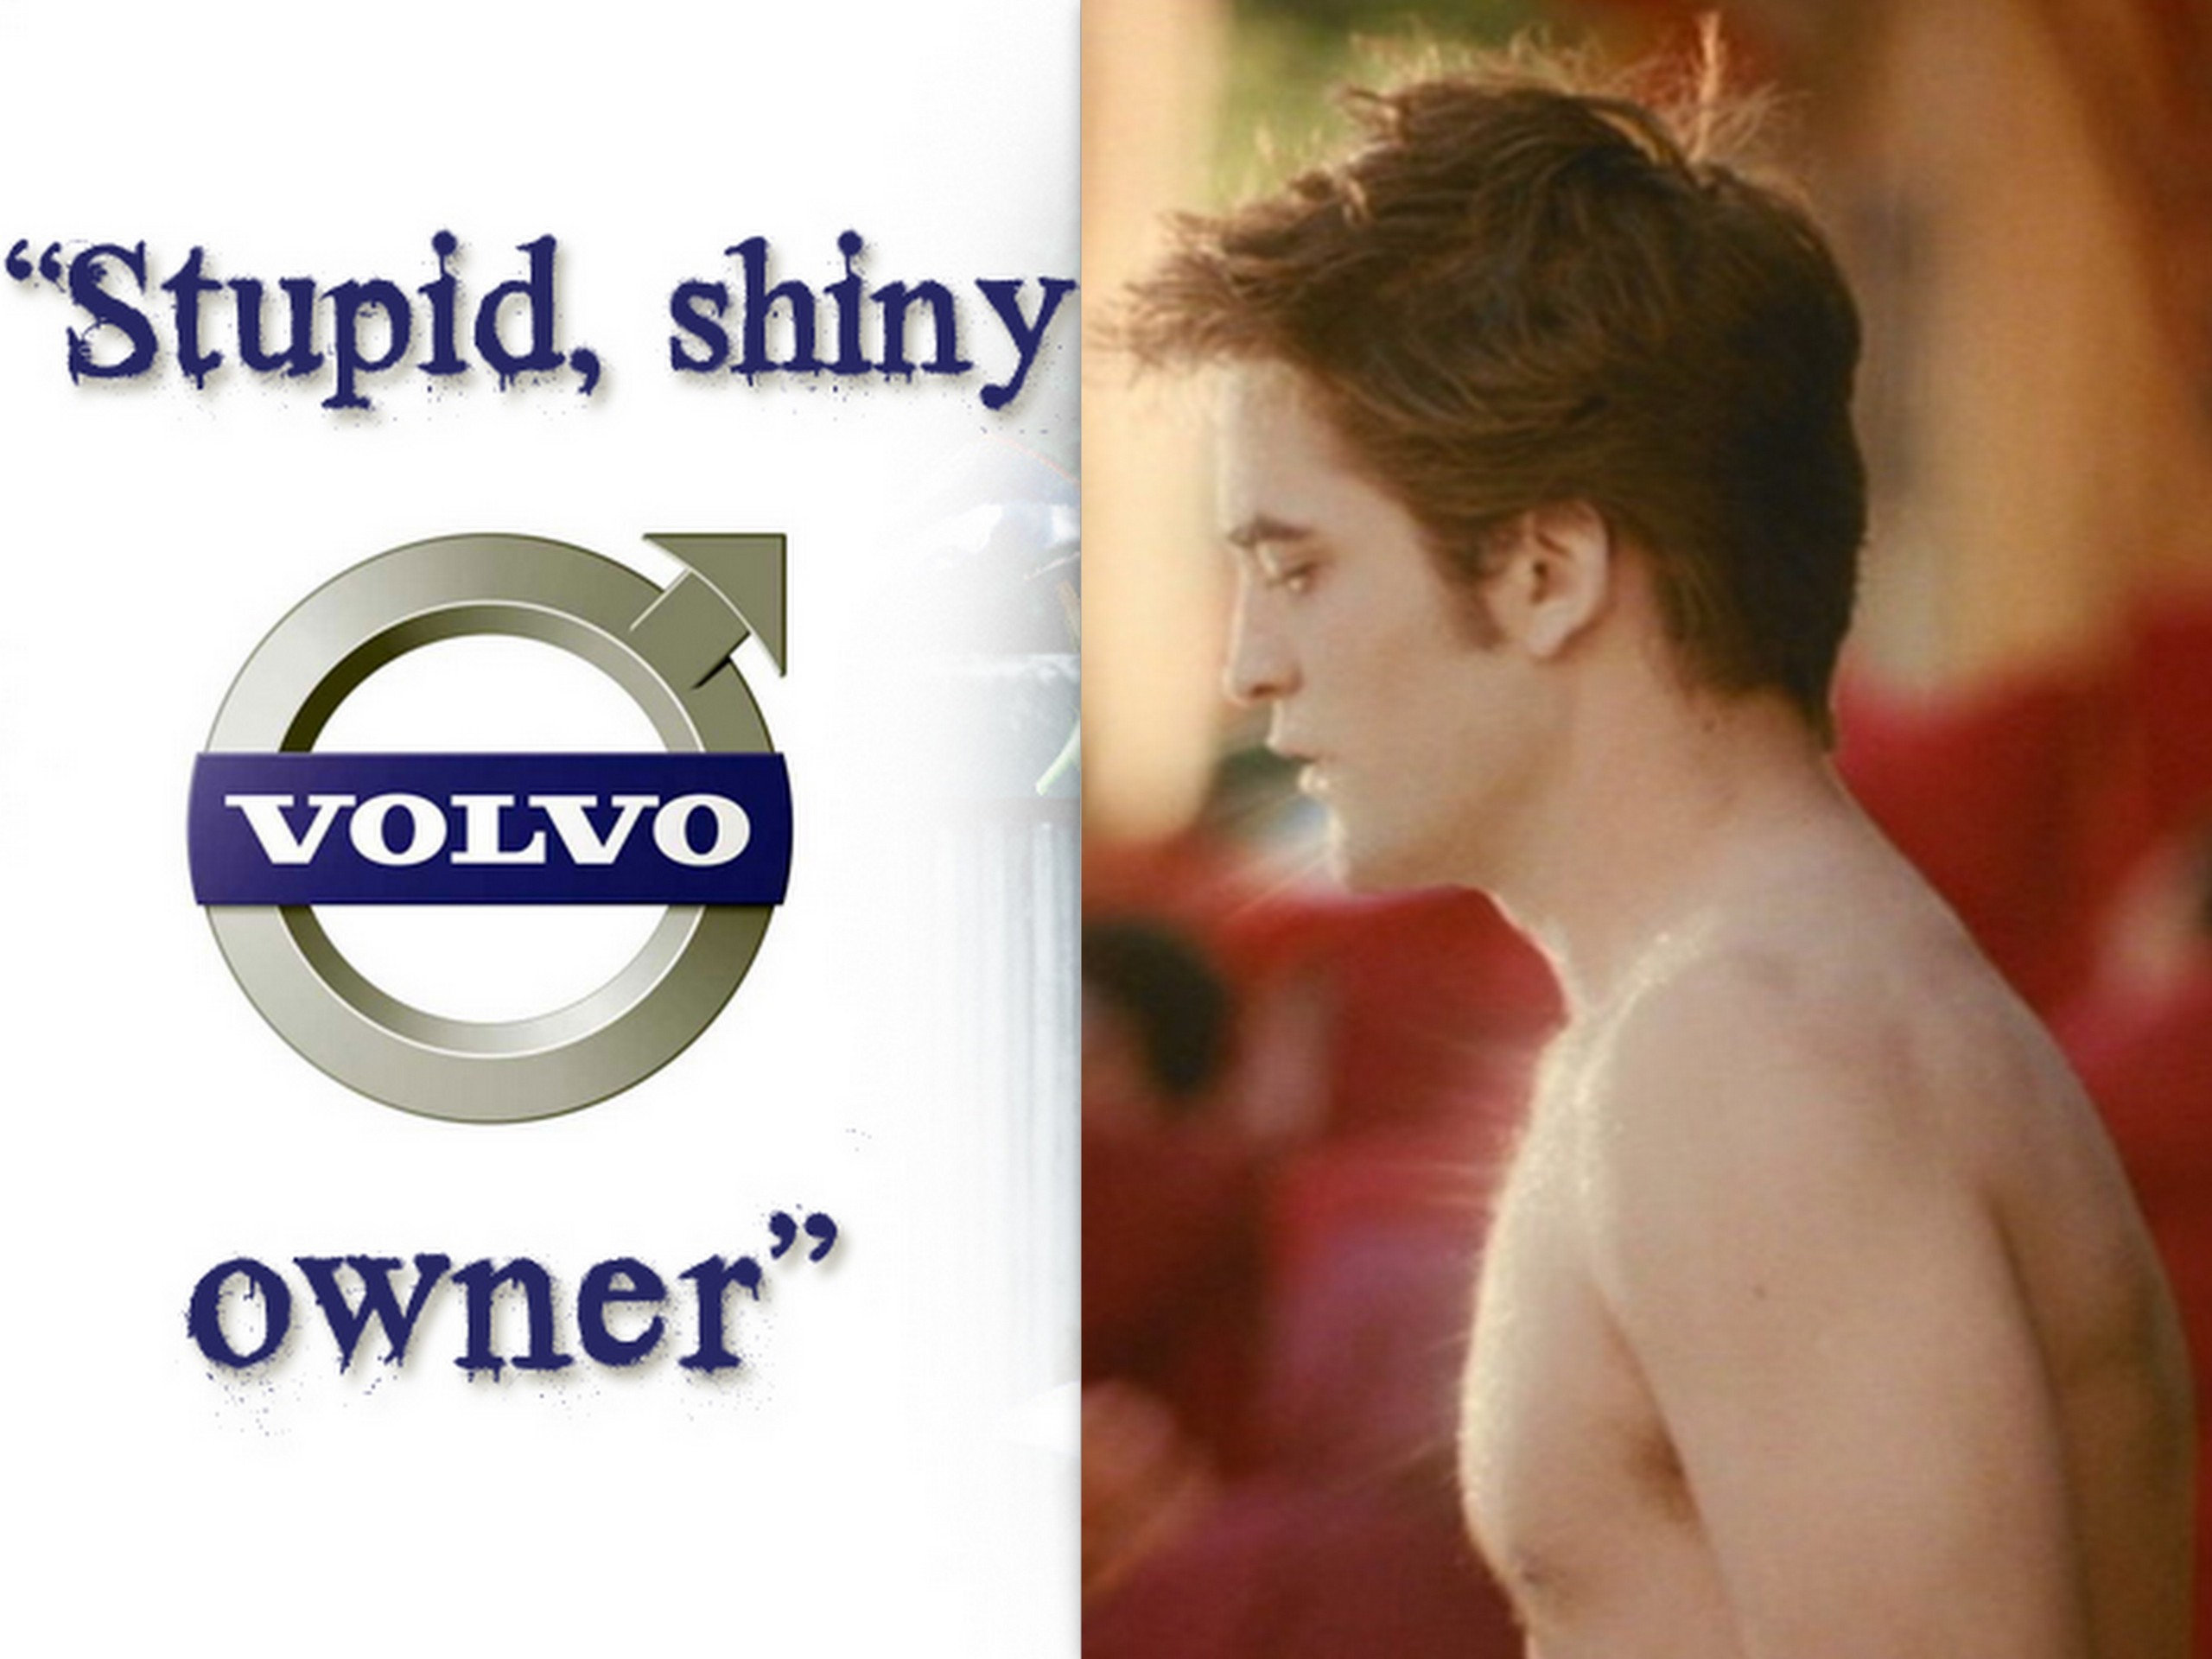 Stupid,shiny Volvo owner